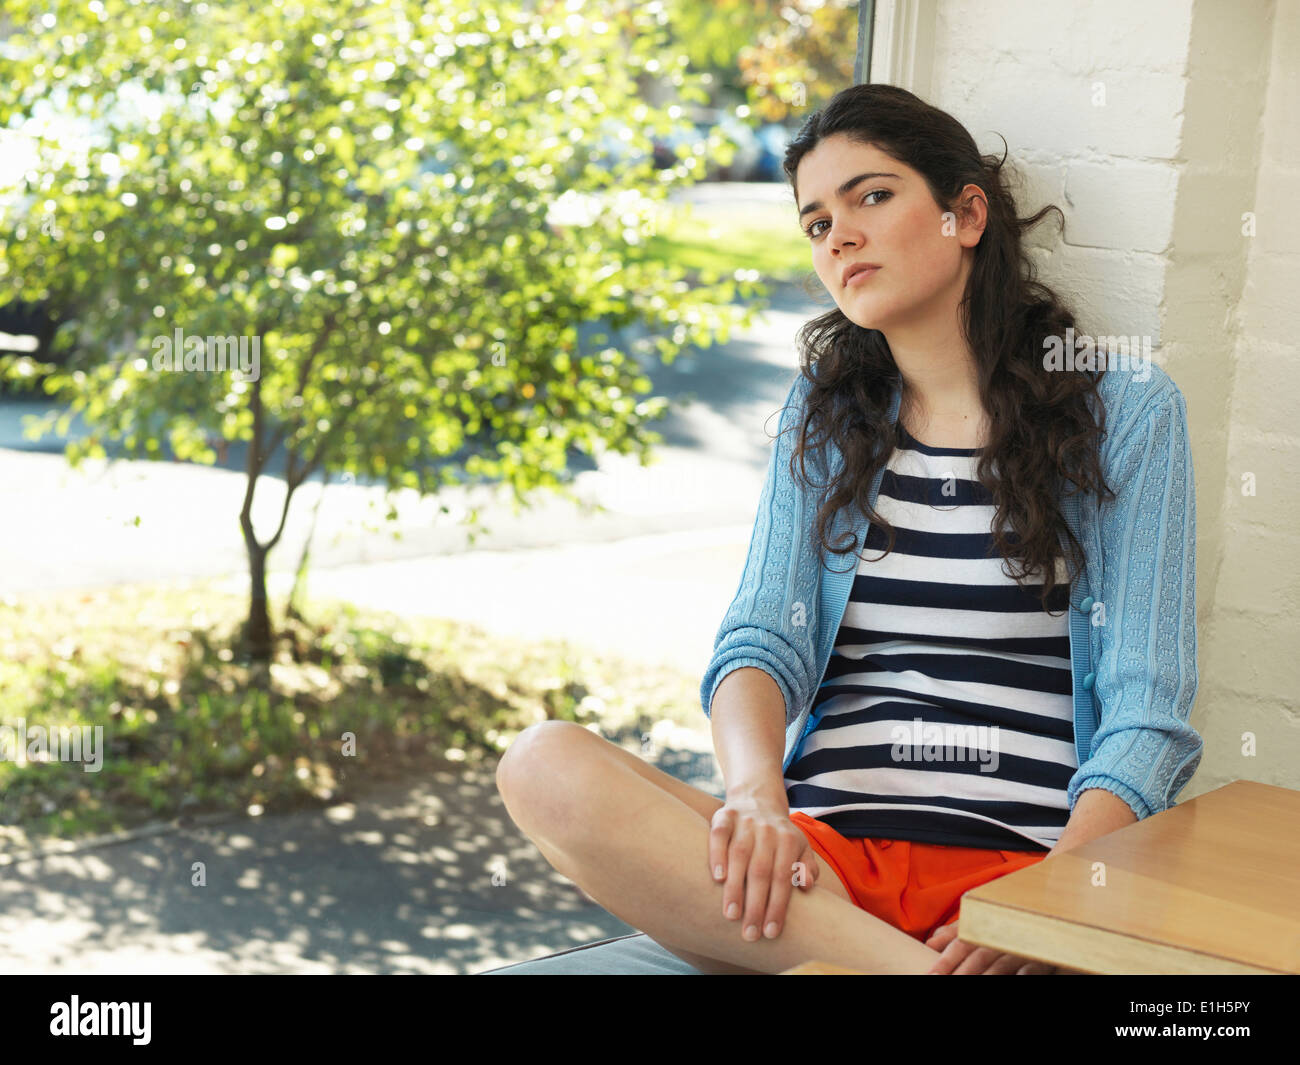 Portrait of sullen young woman leaning against wall - Stock Image